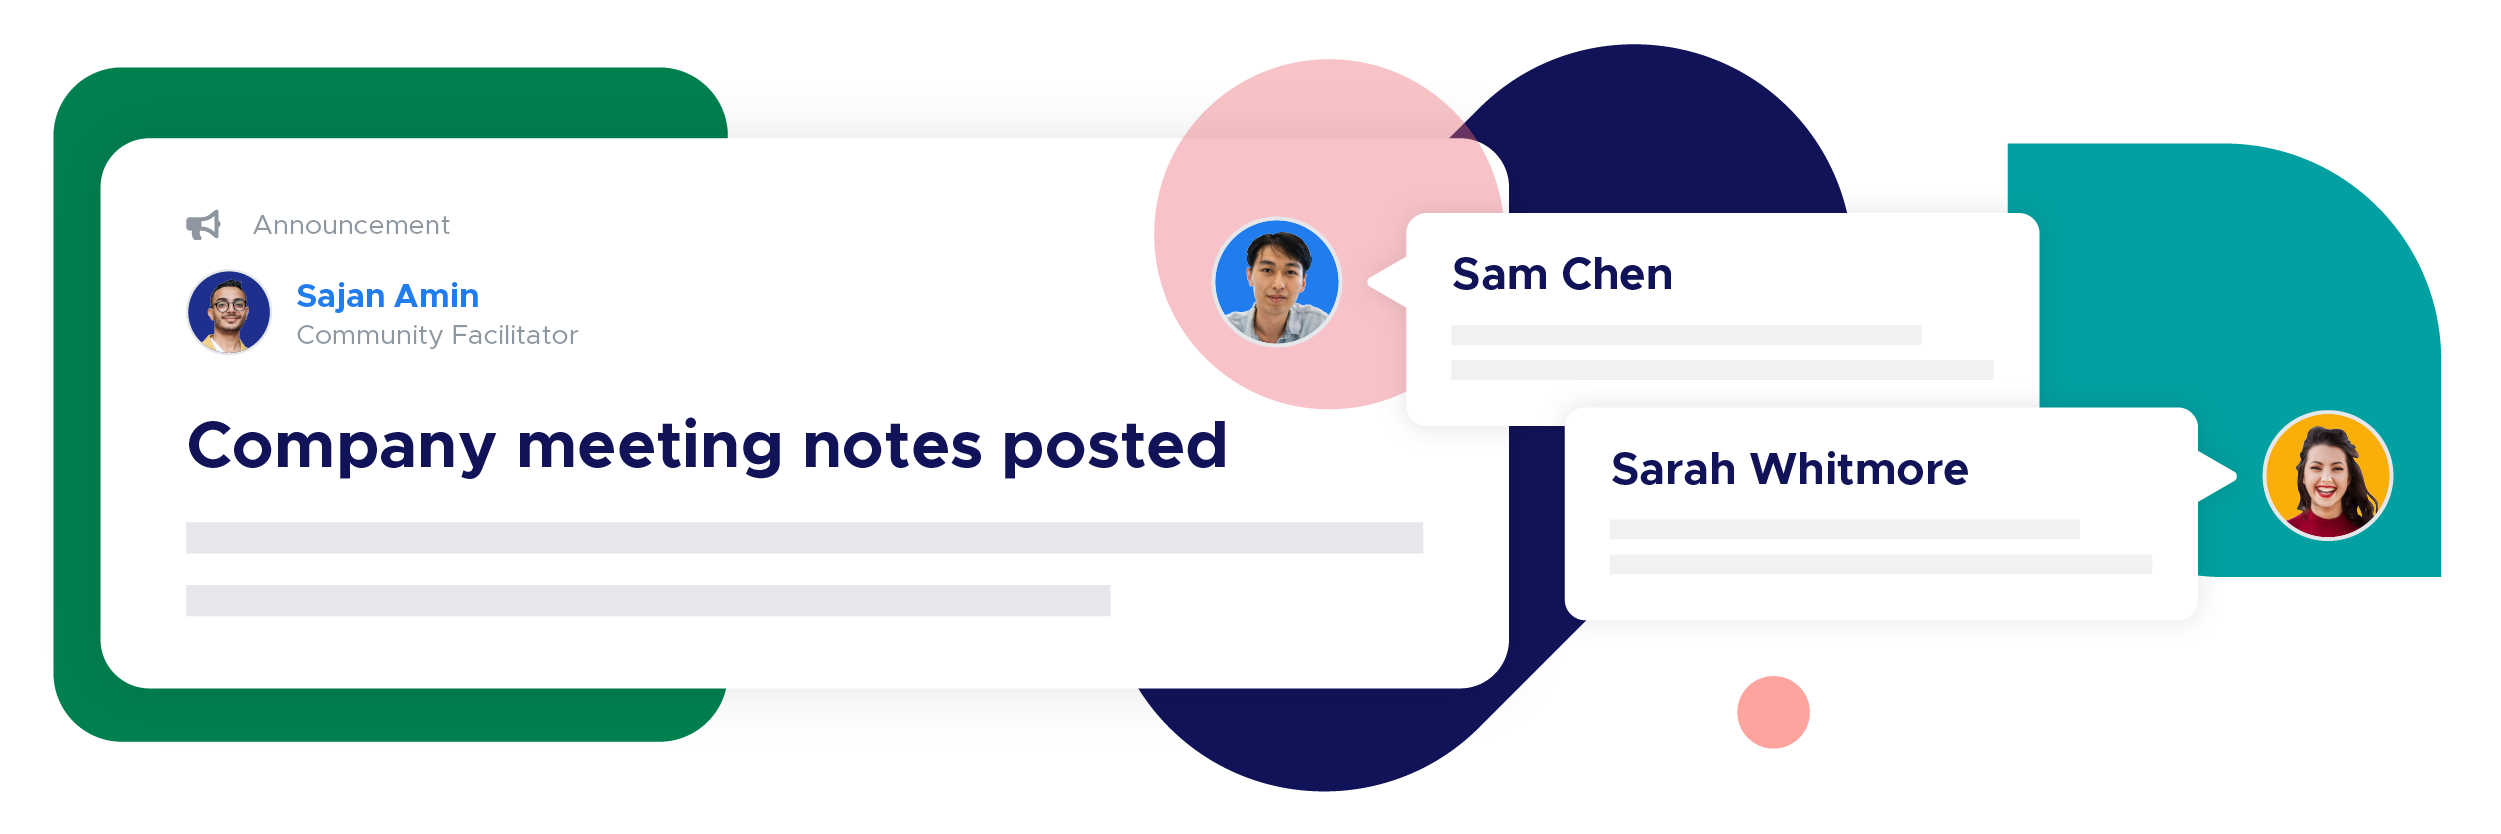 On the left is an announcement post by community facilitator Sajan Amin sharing that company meeting notes are posted. The right side of the image shows direct message chats between community members Sam Chen and Sarah Whitmore.